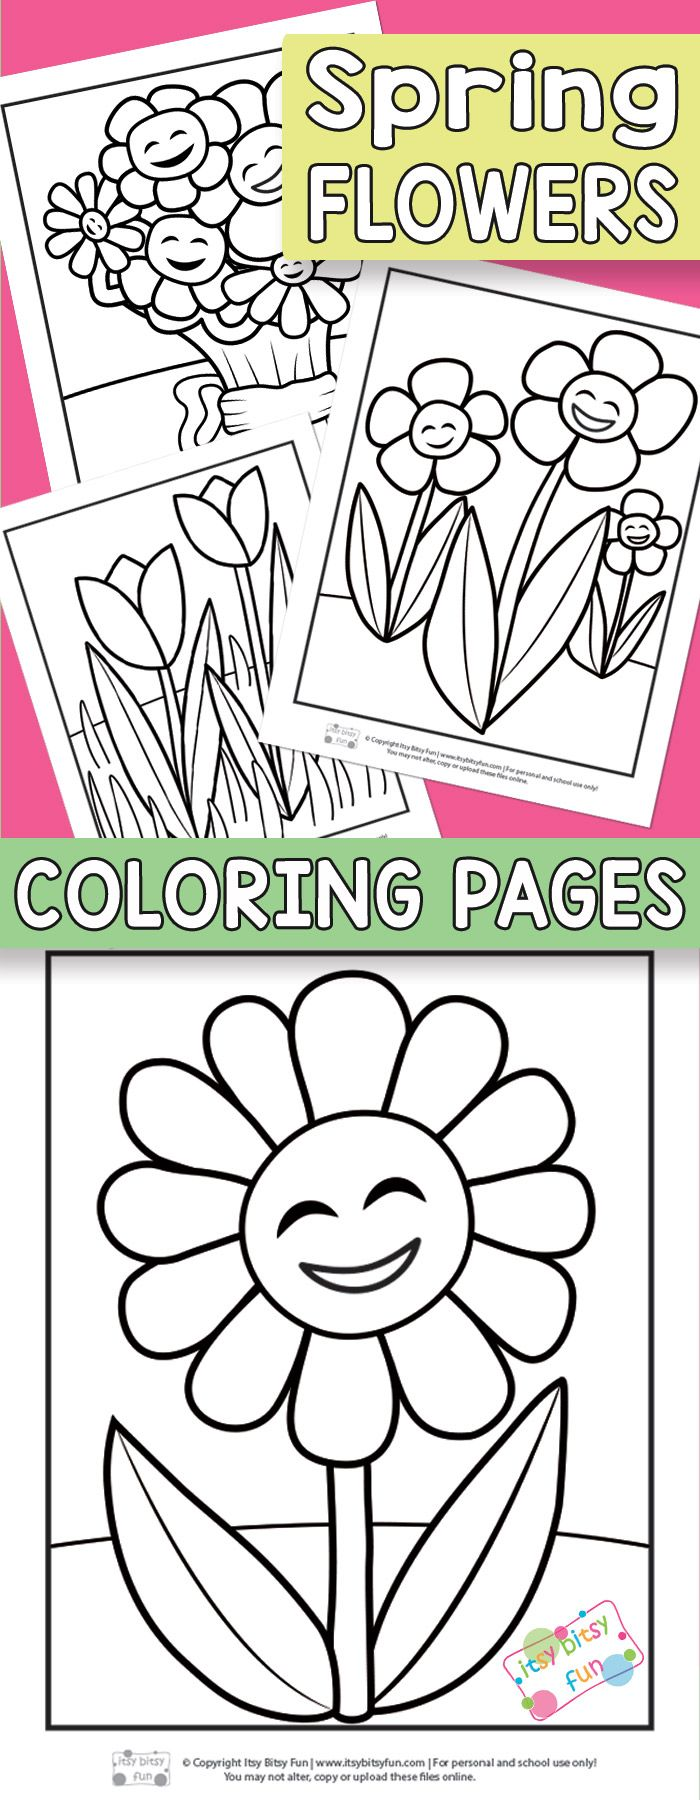 Flower Coloring Pages For Kids Itsybitsyfun Com Spring Coloring Pages Flower Coloring Pages Preschool Coloring Pages